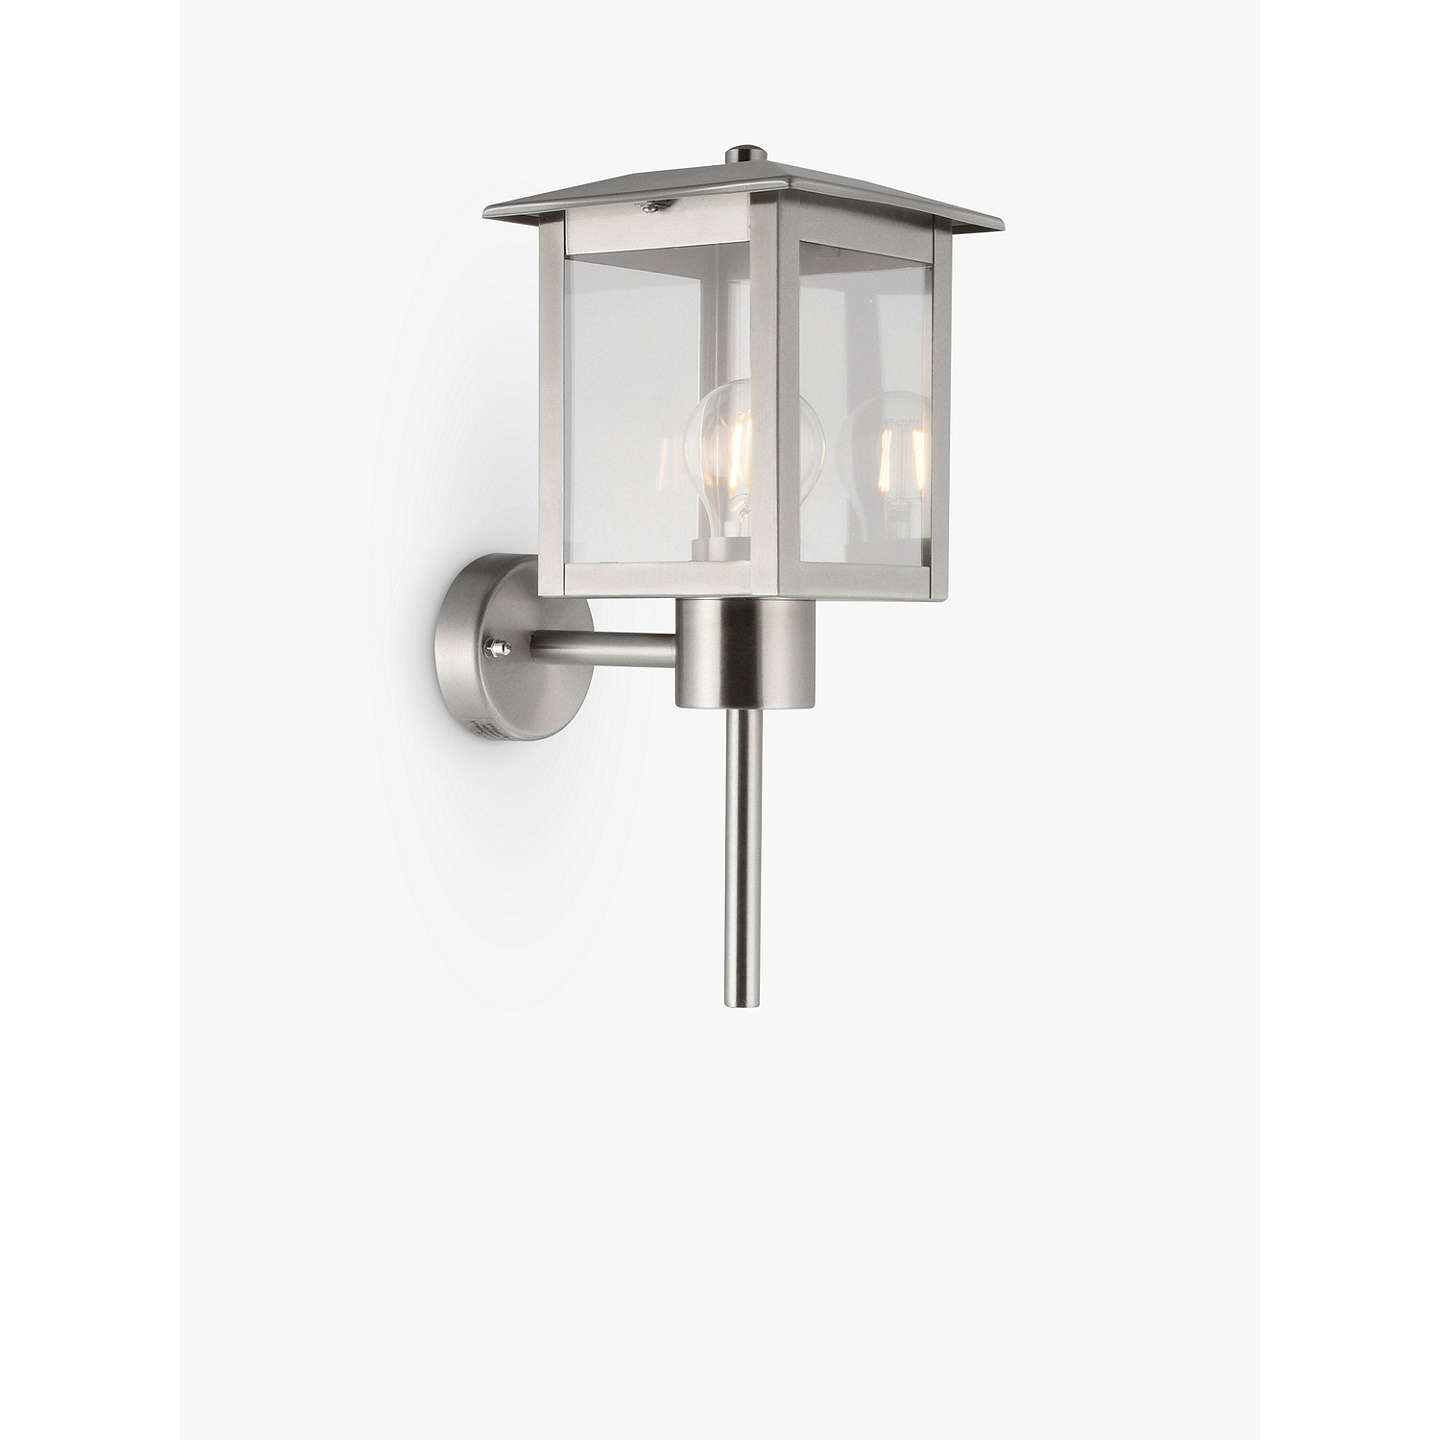 Porch Light John Lewis: John Lewis Stowe Coach Lantern Outdoor Wall Light At John